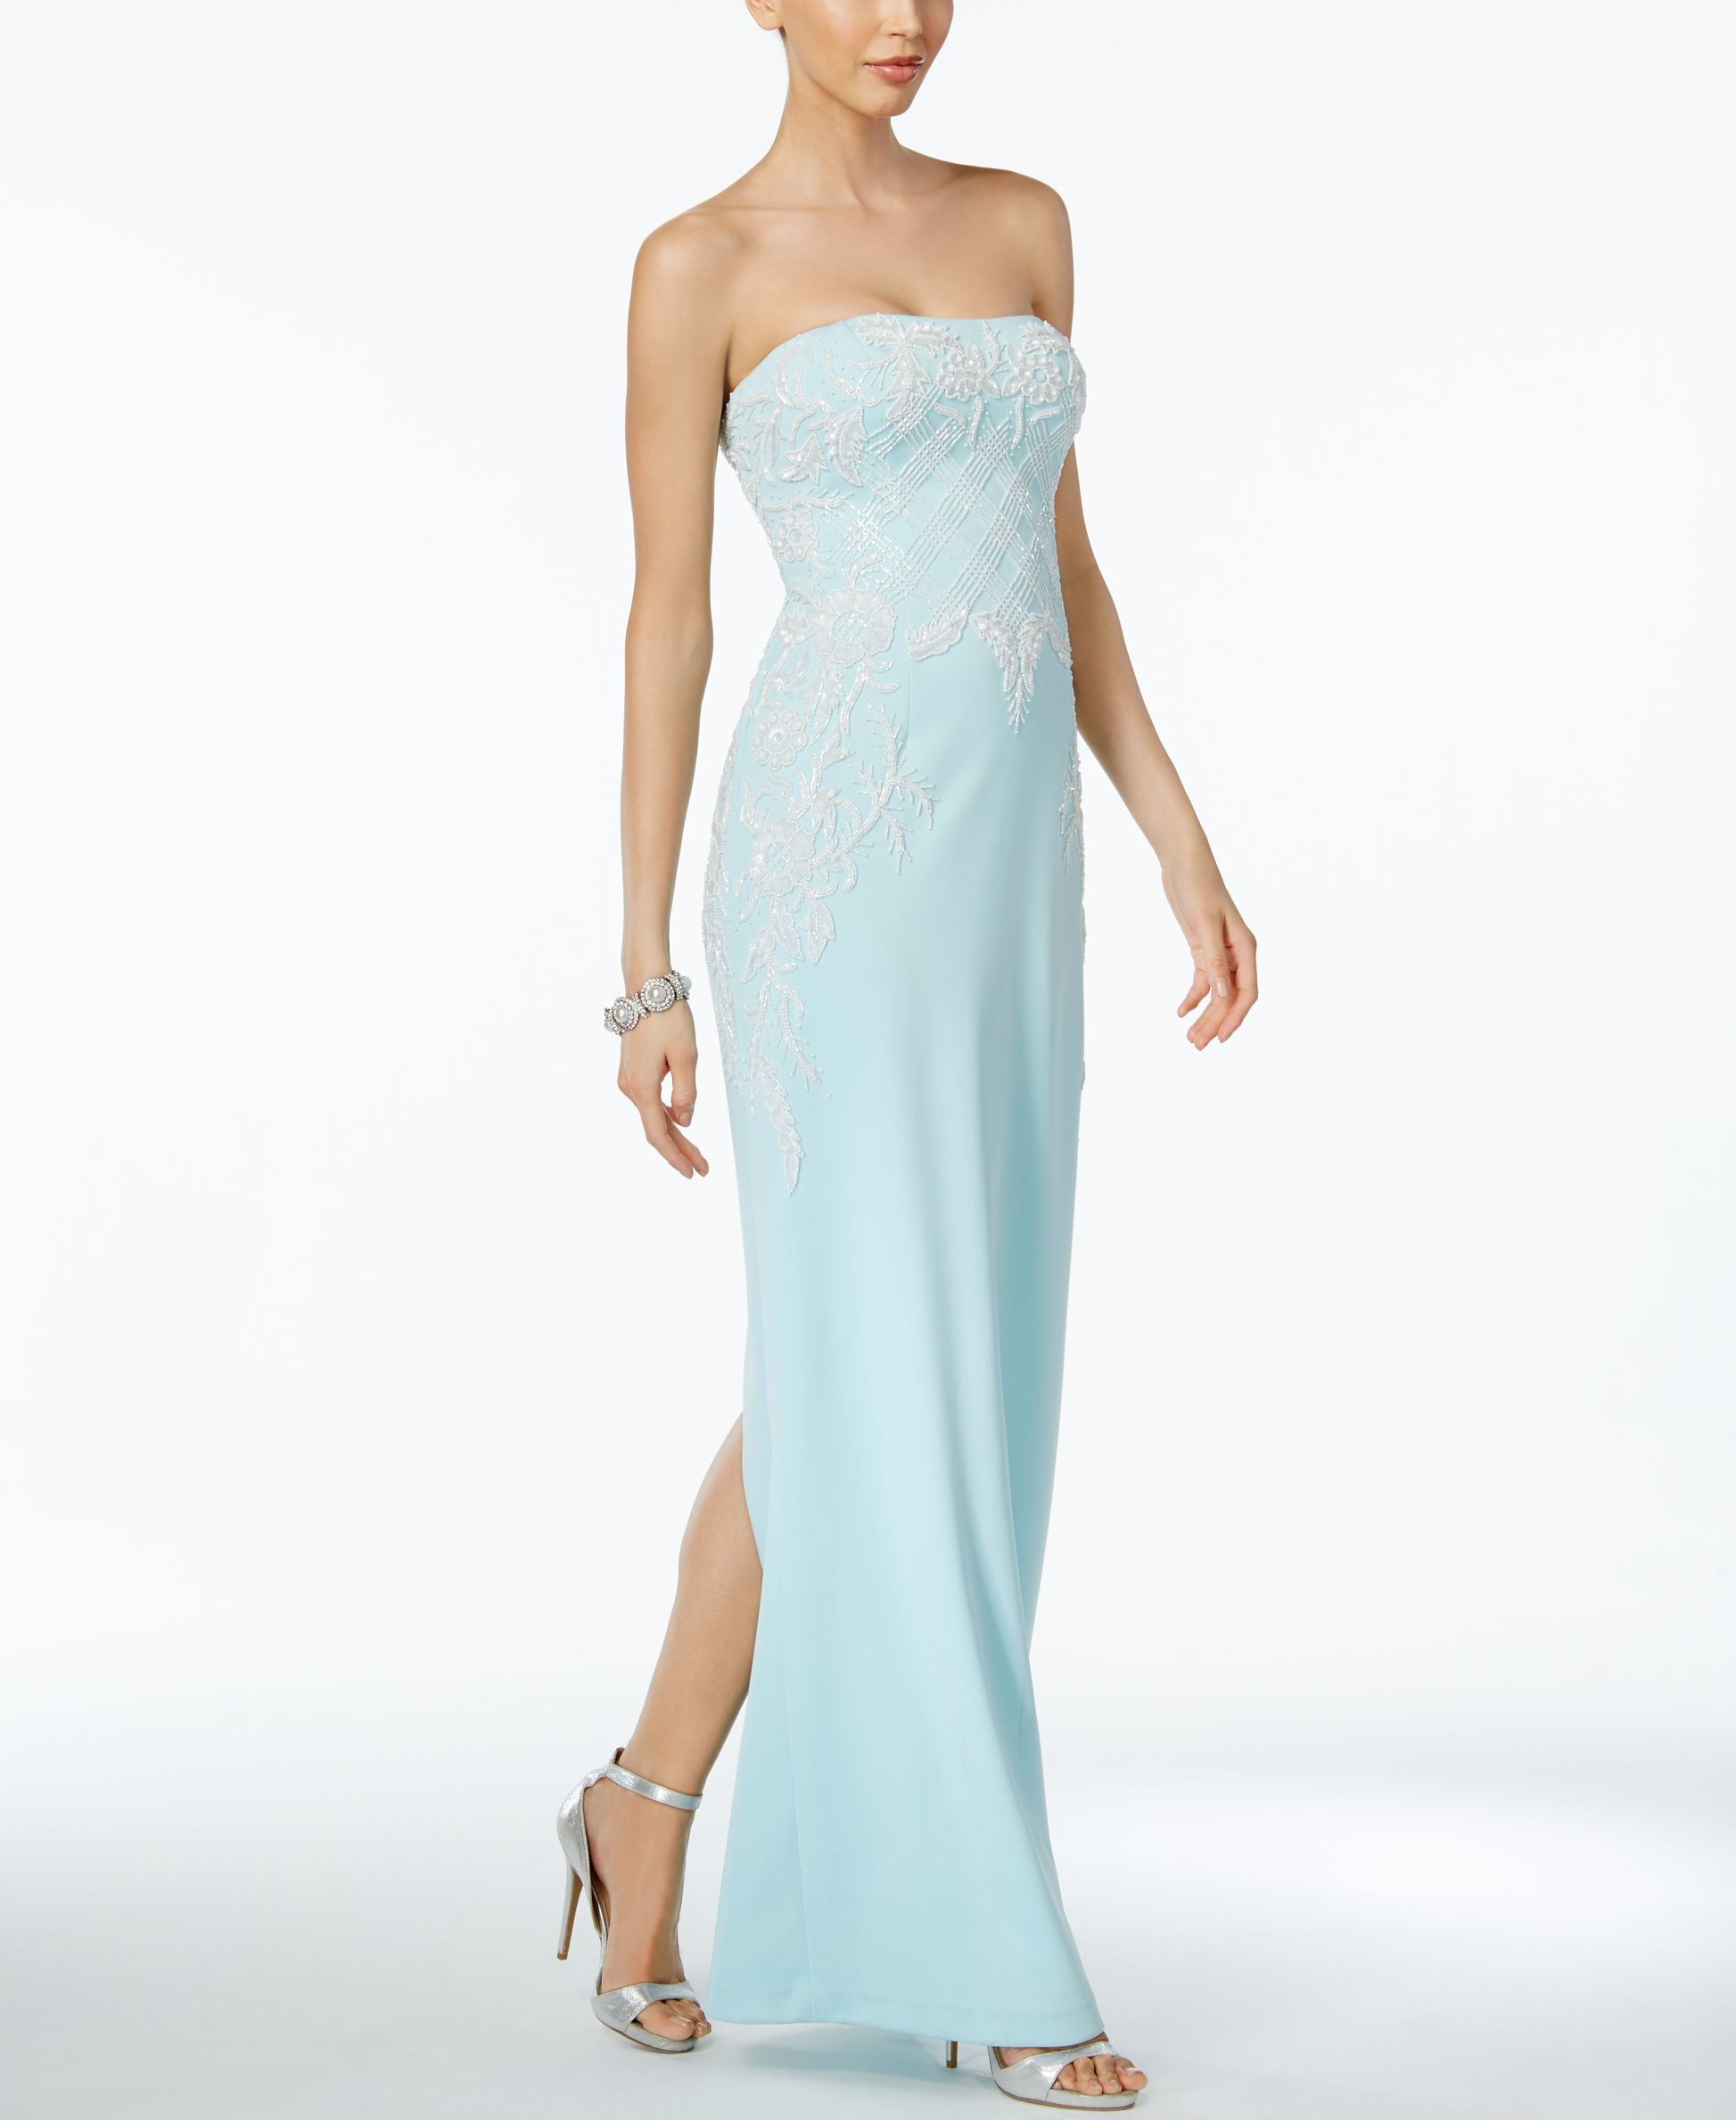 Adrianna Papell Strapless Beaded Gown   Products   Pinterest ...